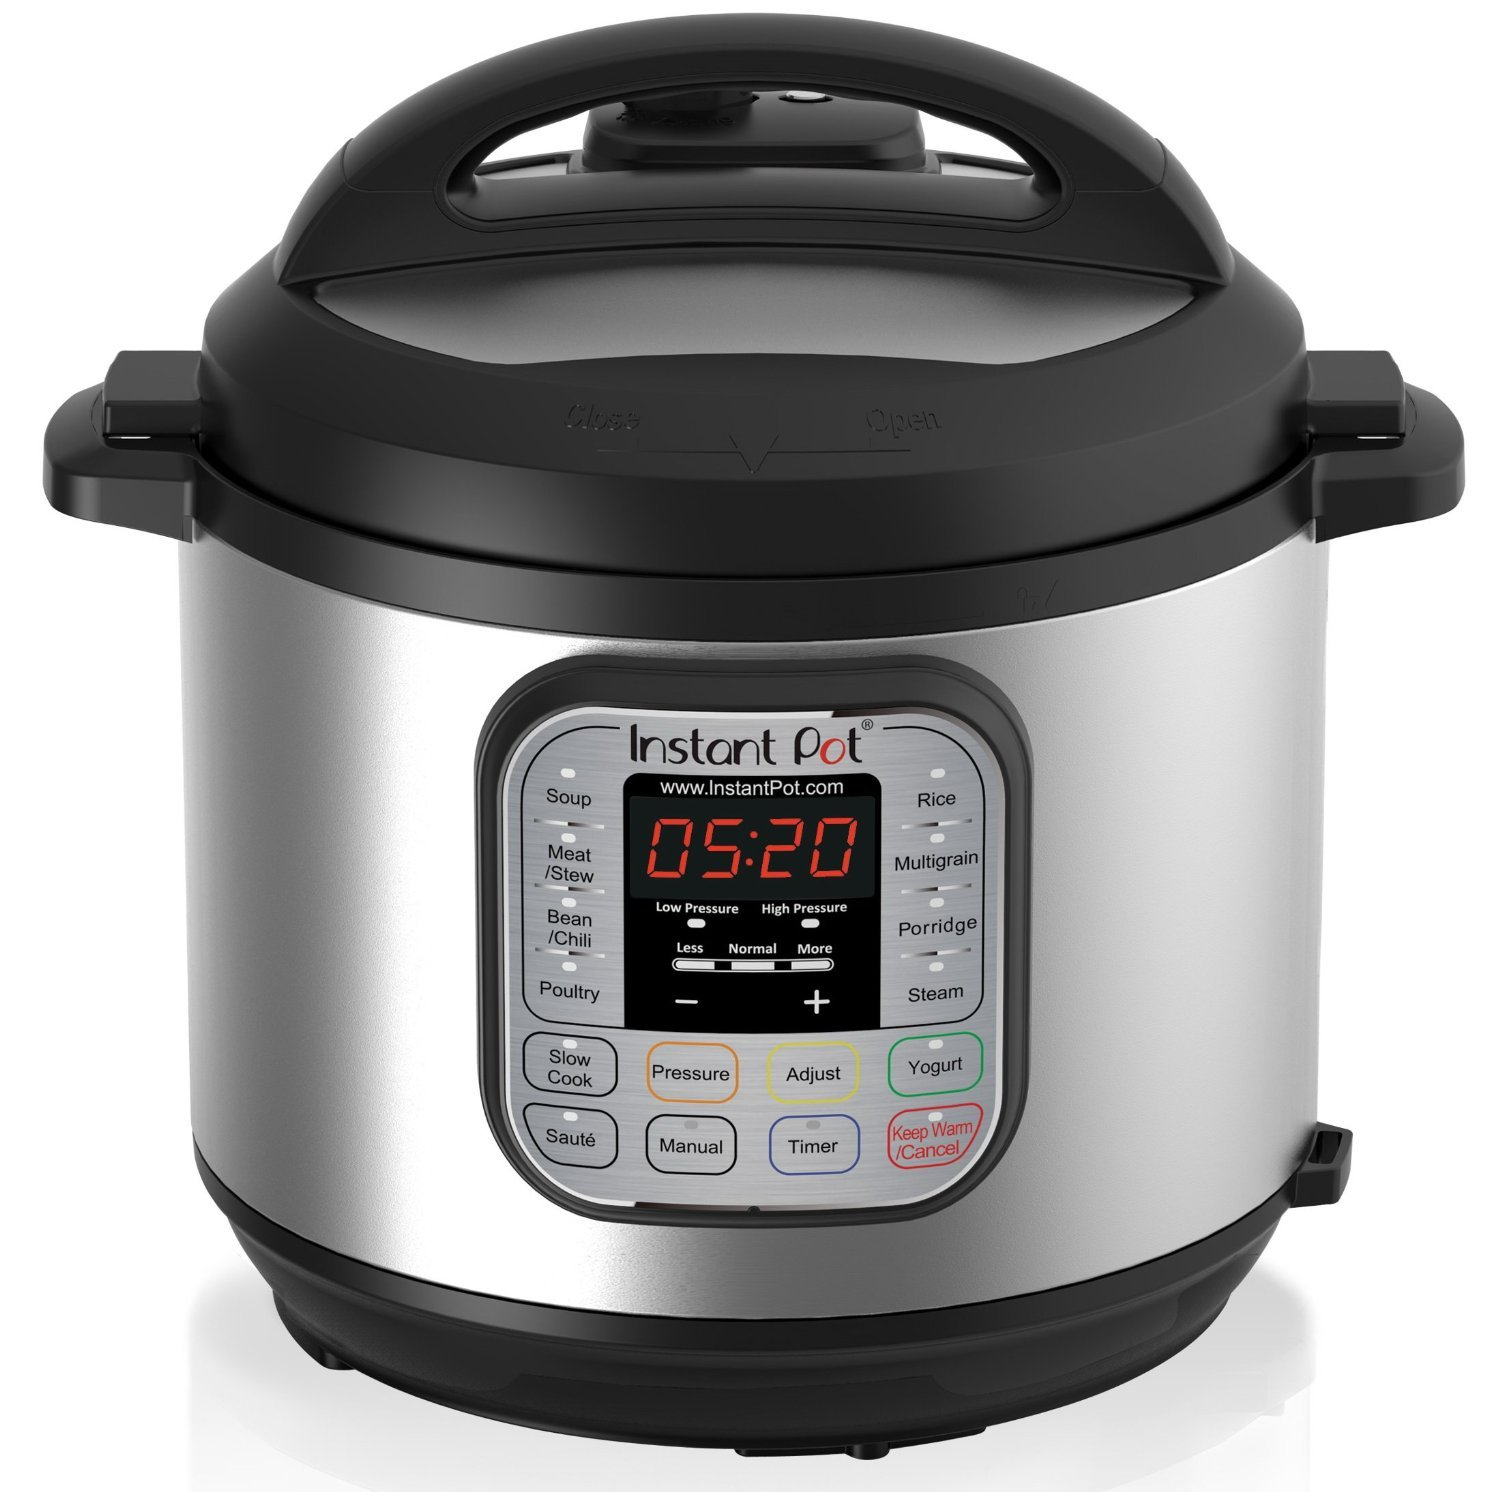 nstant Pot IP-DUO60 7-in-1 Multi-Functional Pressure Cooker, 6Qt/1000W